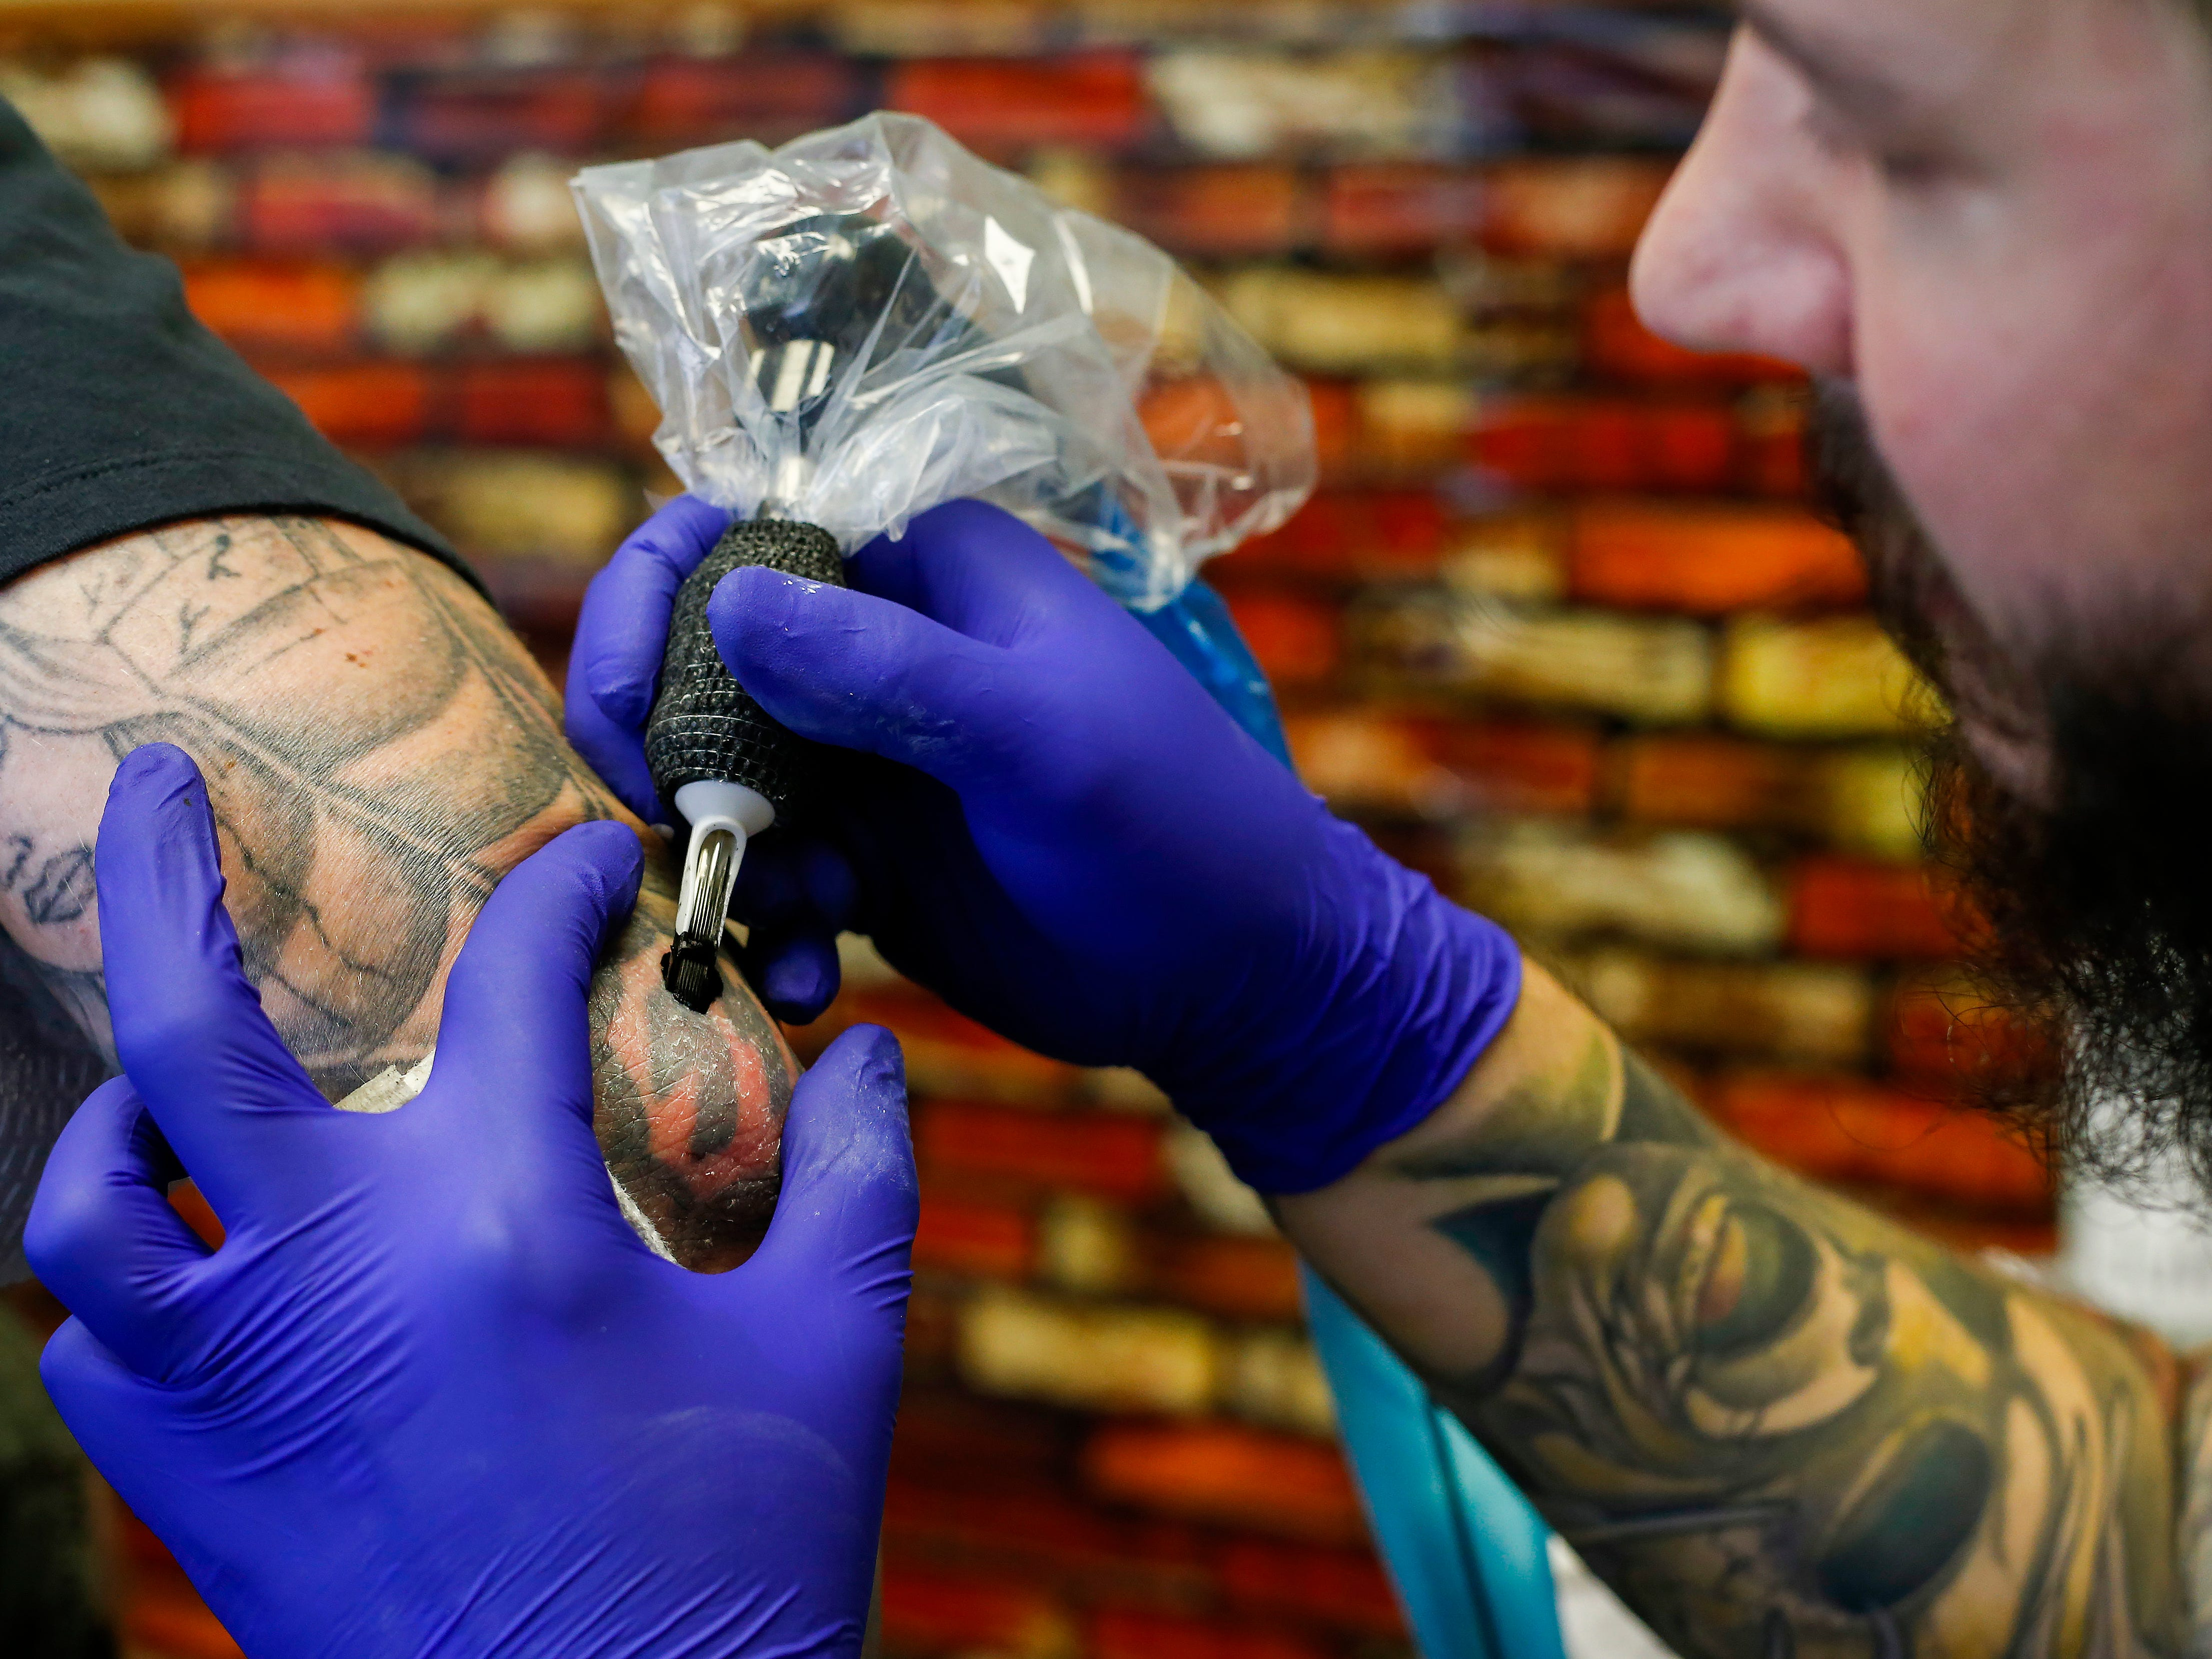 Justin Fleetwood, a tattoo artist at Queen City Tattoo Company, begins to cover up a Nazi SS bolt tattoo on the elbow of a man who wished not to be identified on Tuesday, Aug. 21, 2018. Fleetwood is offering to cover up people's hate-tattoos at no cost.